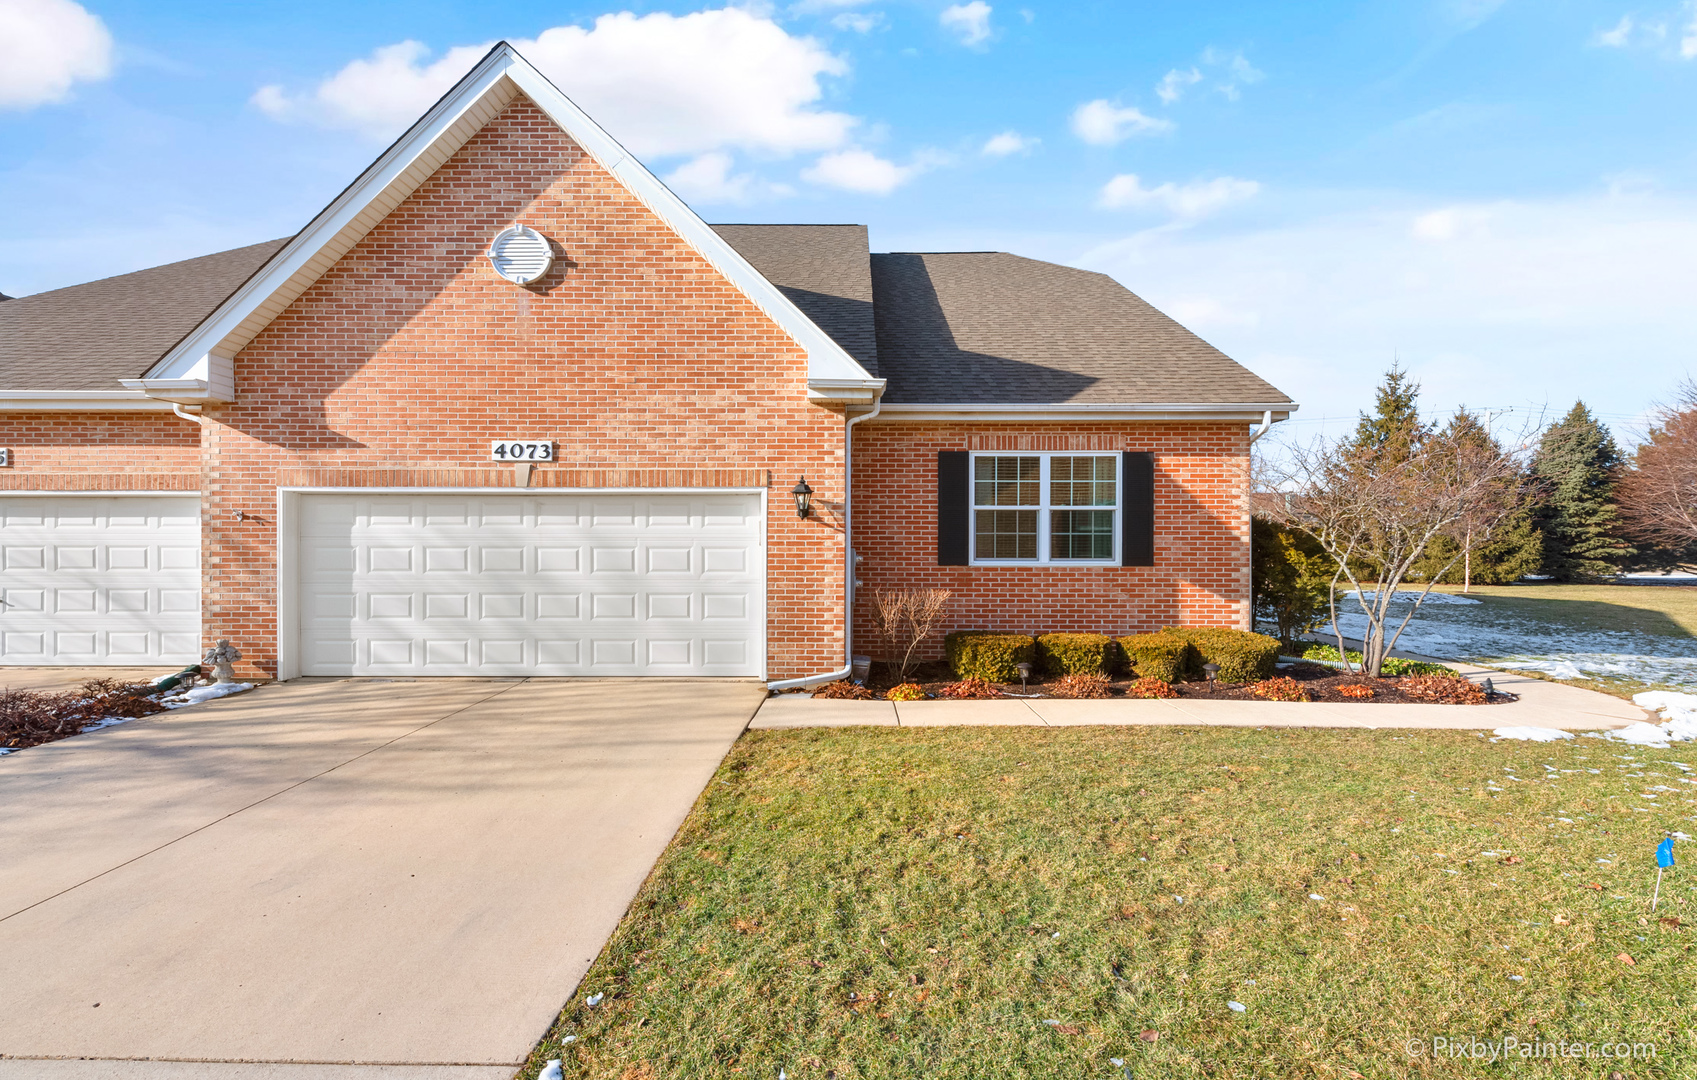 Photo for 4073 Pheasant Court, St. Charles, IL 60174 (MLS # 10635199)